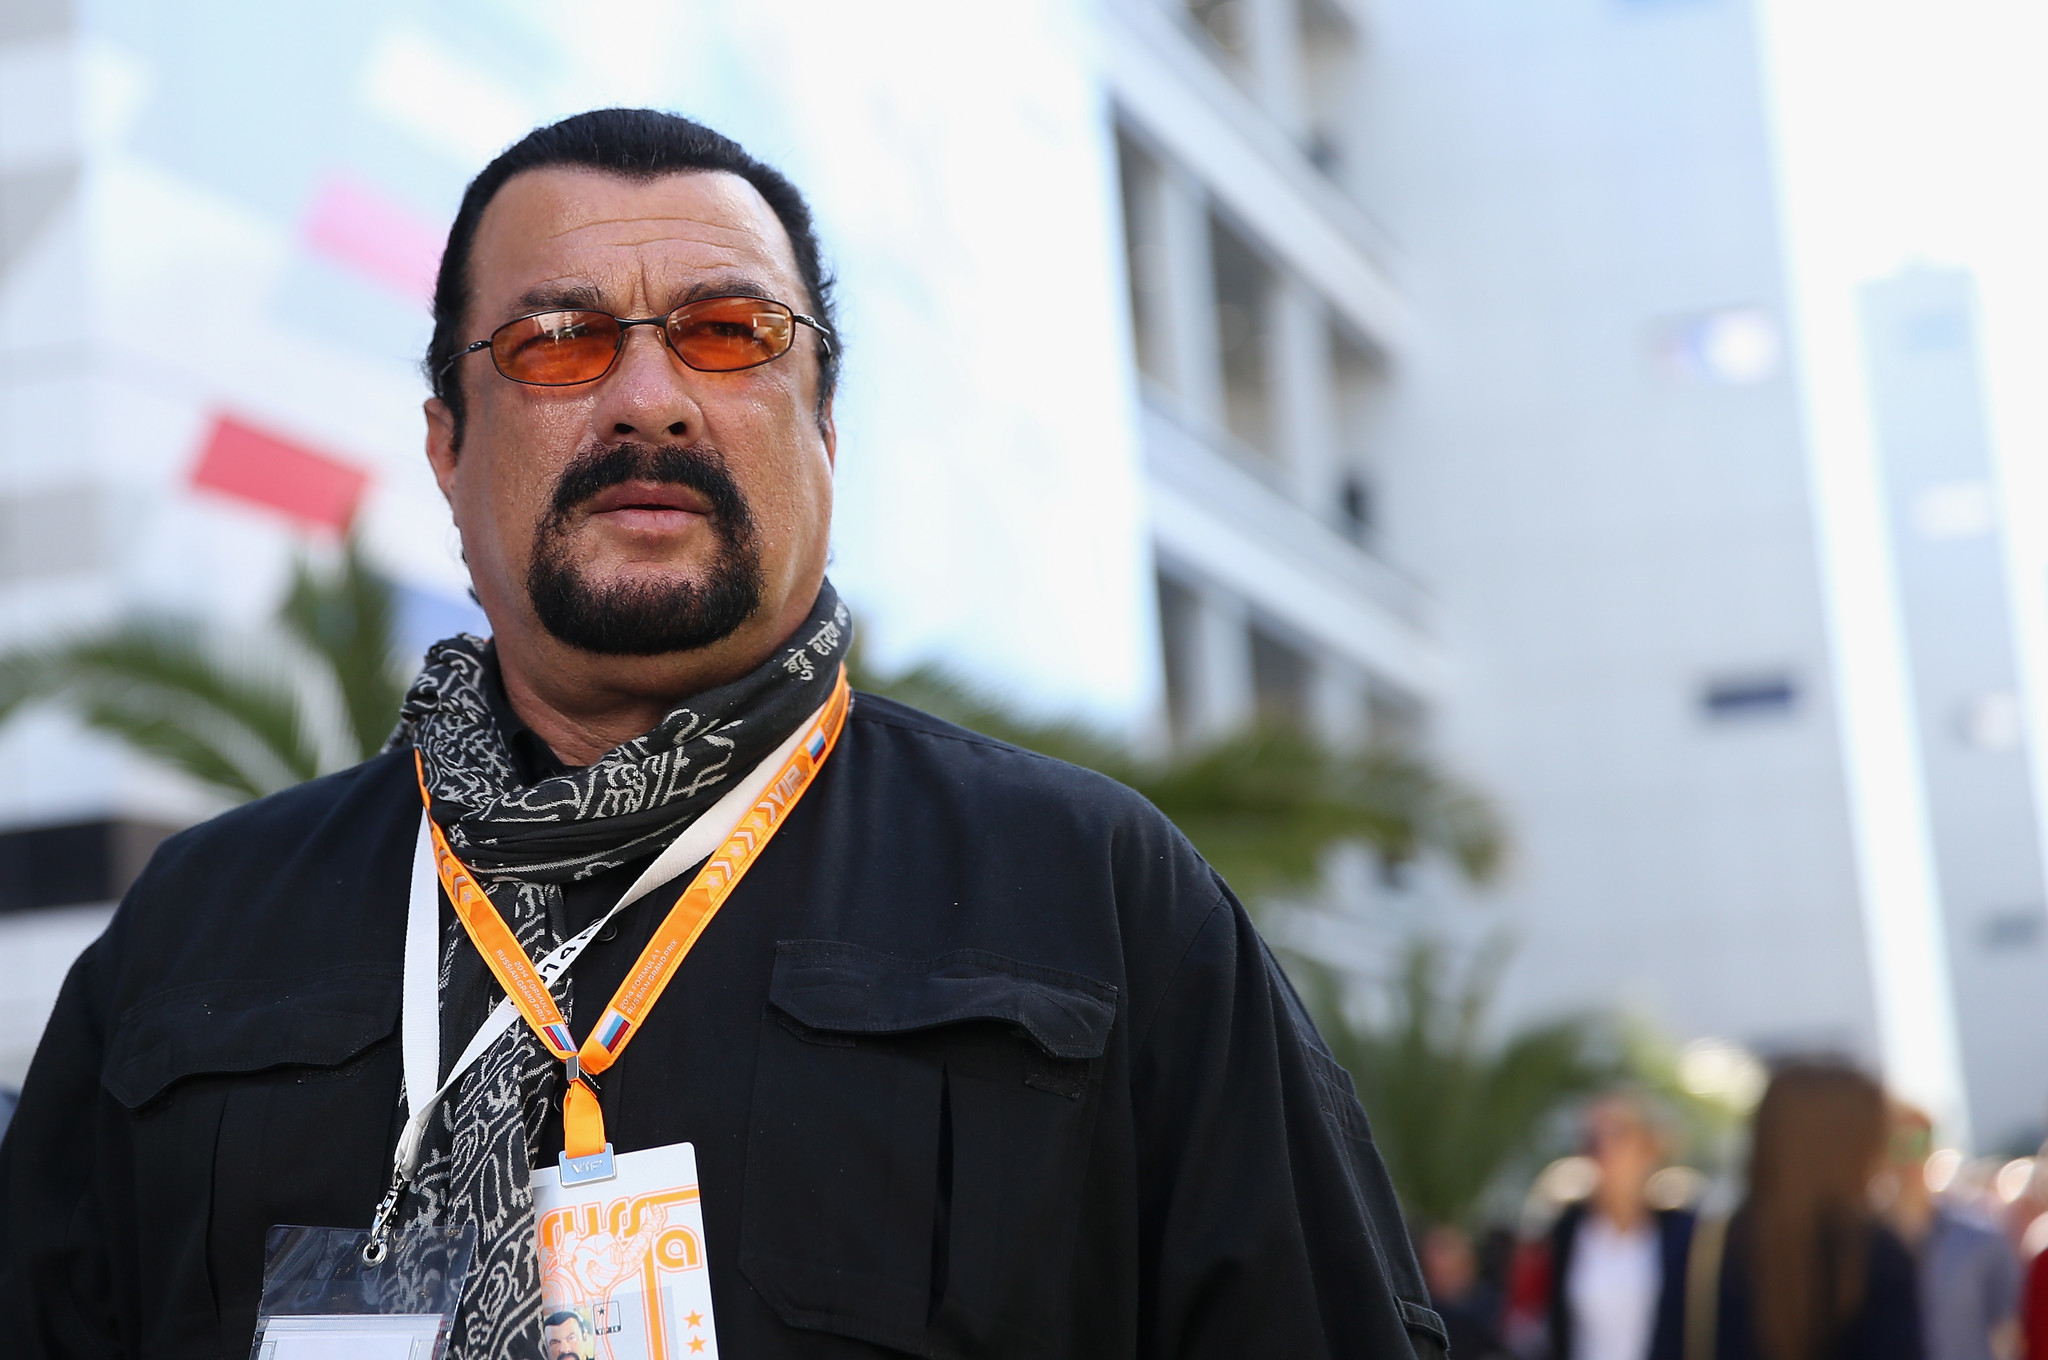 Steven Seagal settles securities charges over promoting cryptocurrency